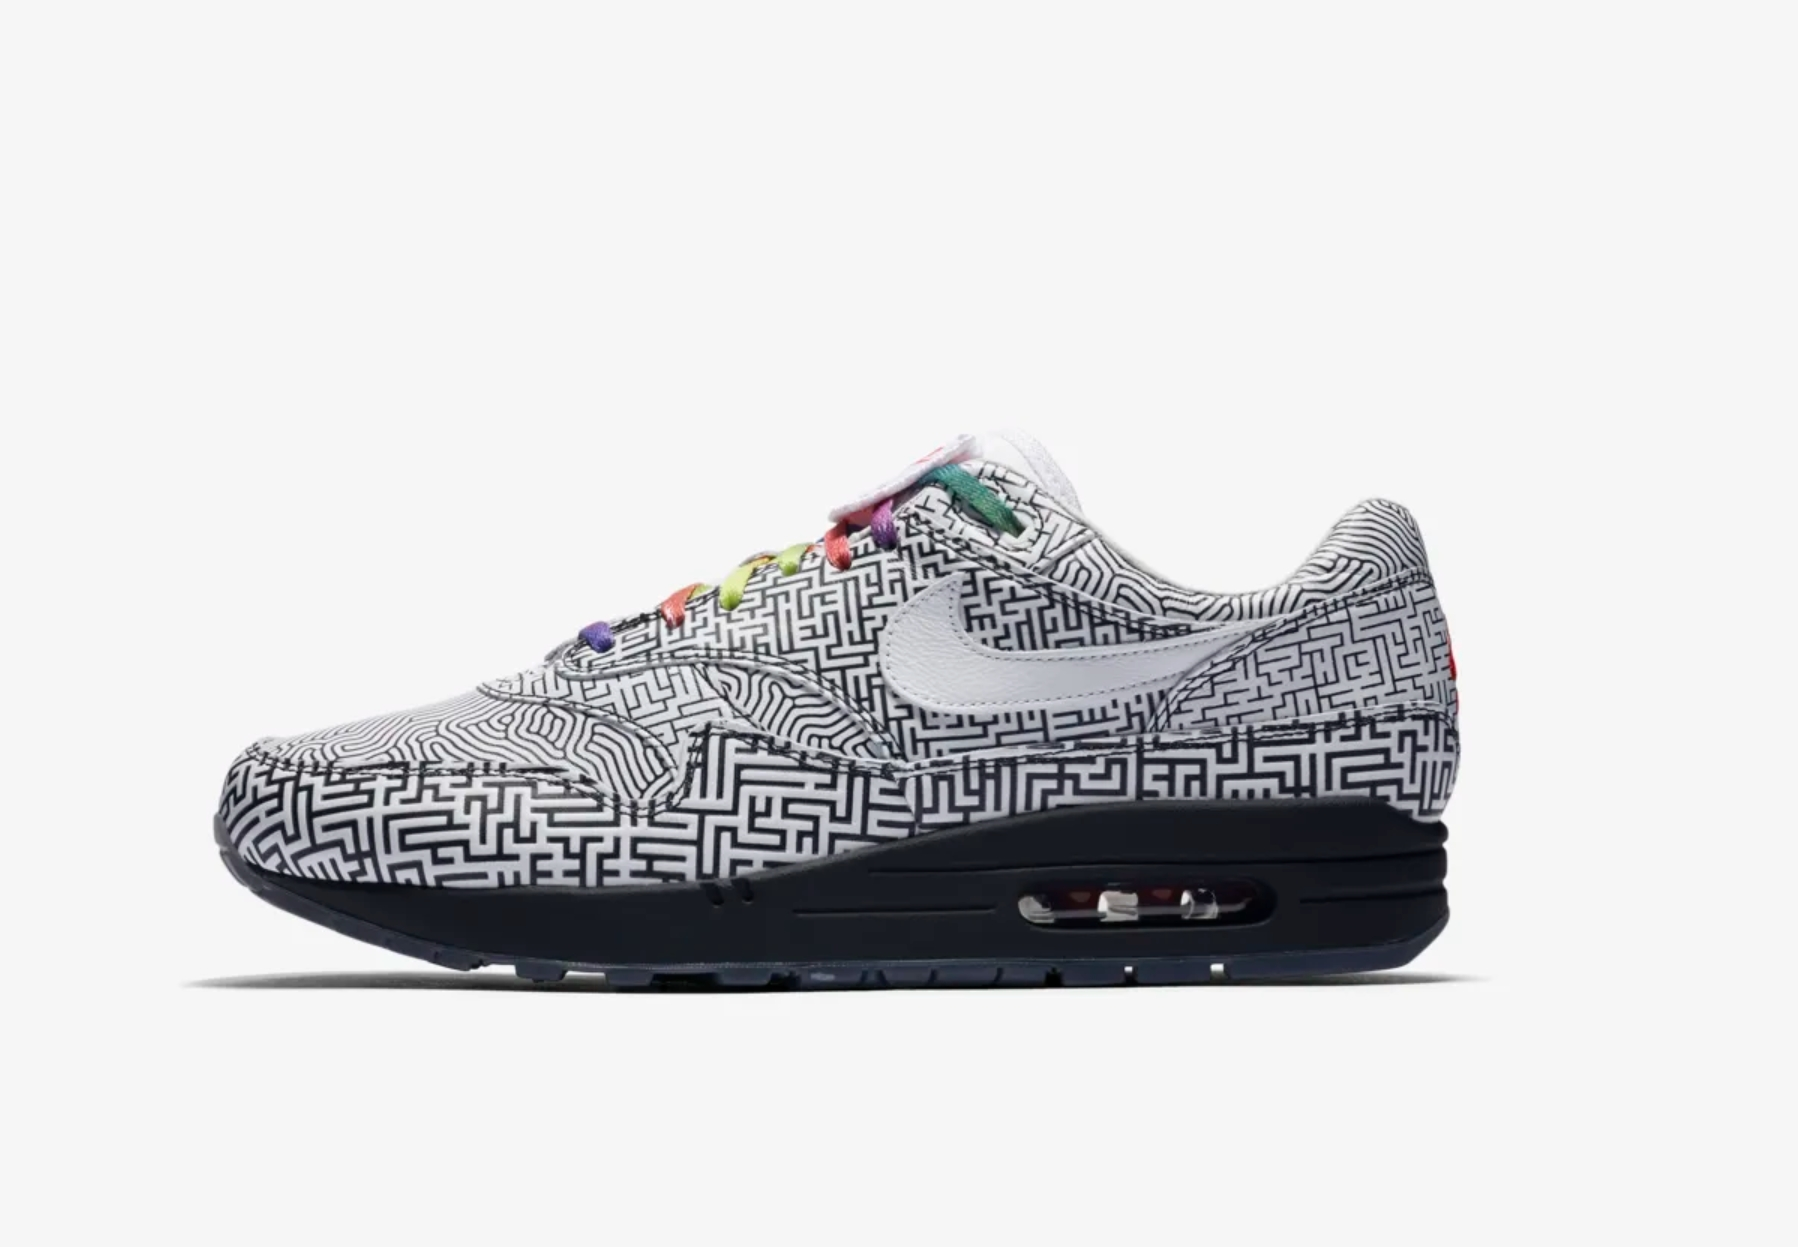 Where To Buy Air Max Shanghai Kaleidoscope And This Week's